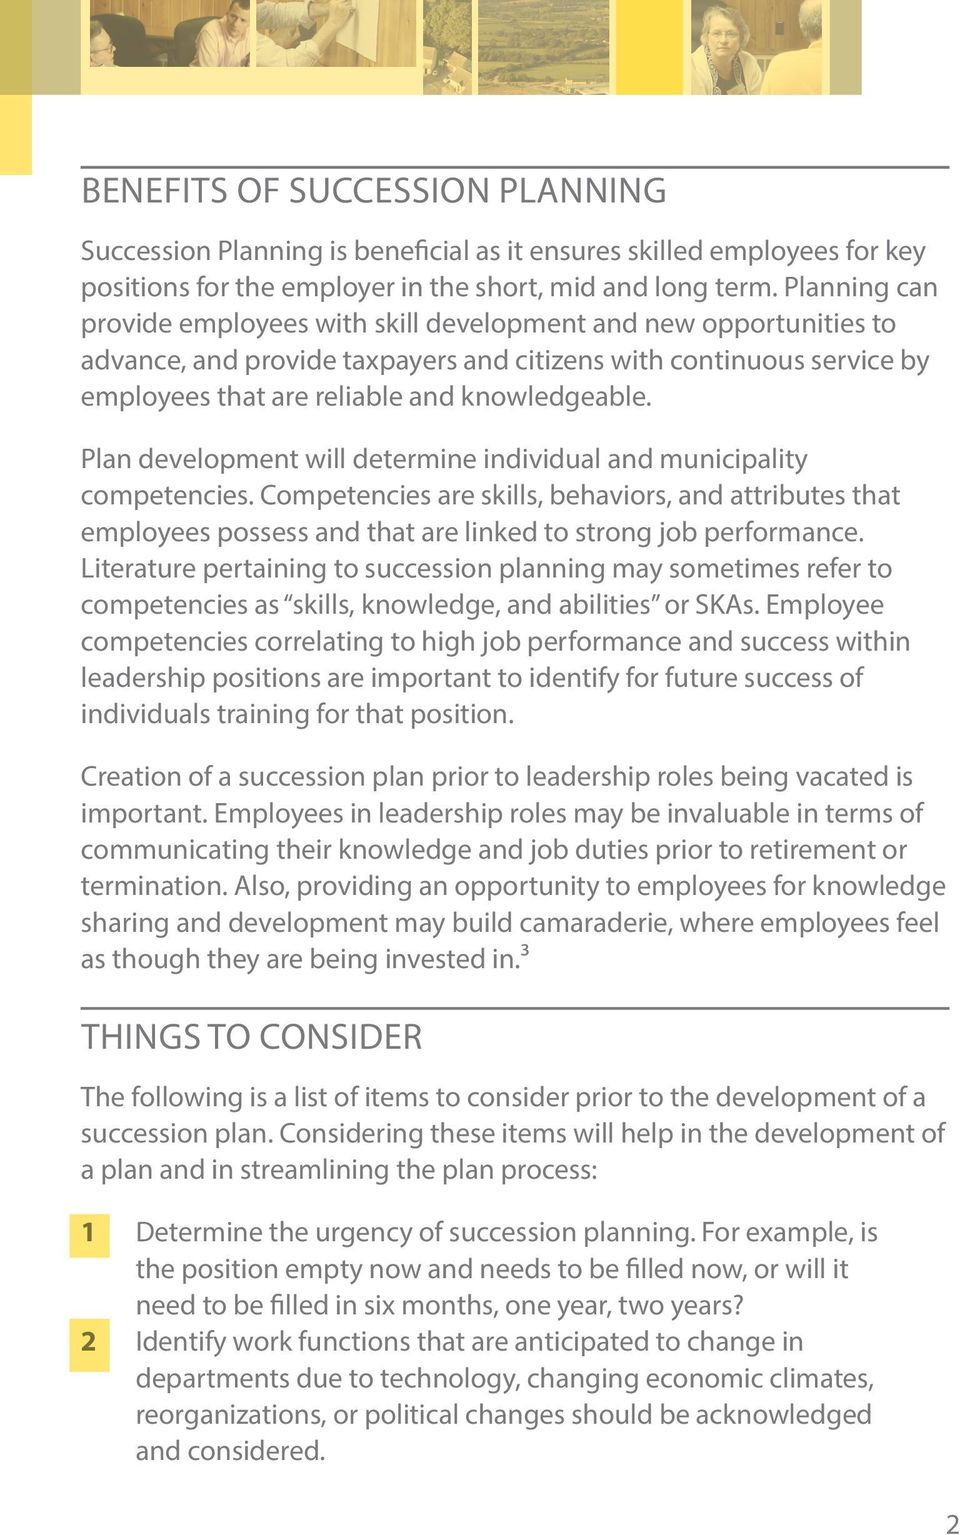 Plan development will determine individual and municipality competencies. Competencies are skills, behaviors, and attributes that employees possess and that are linked to strong job performance.